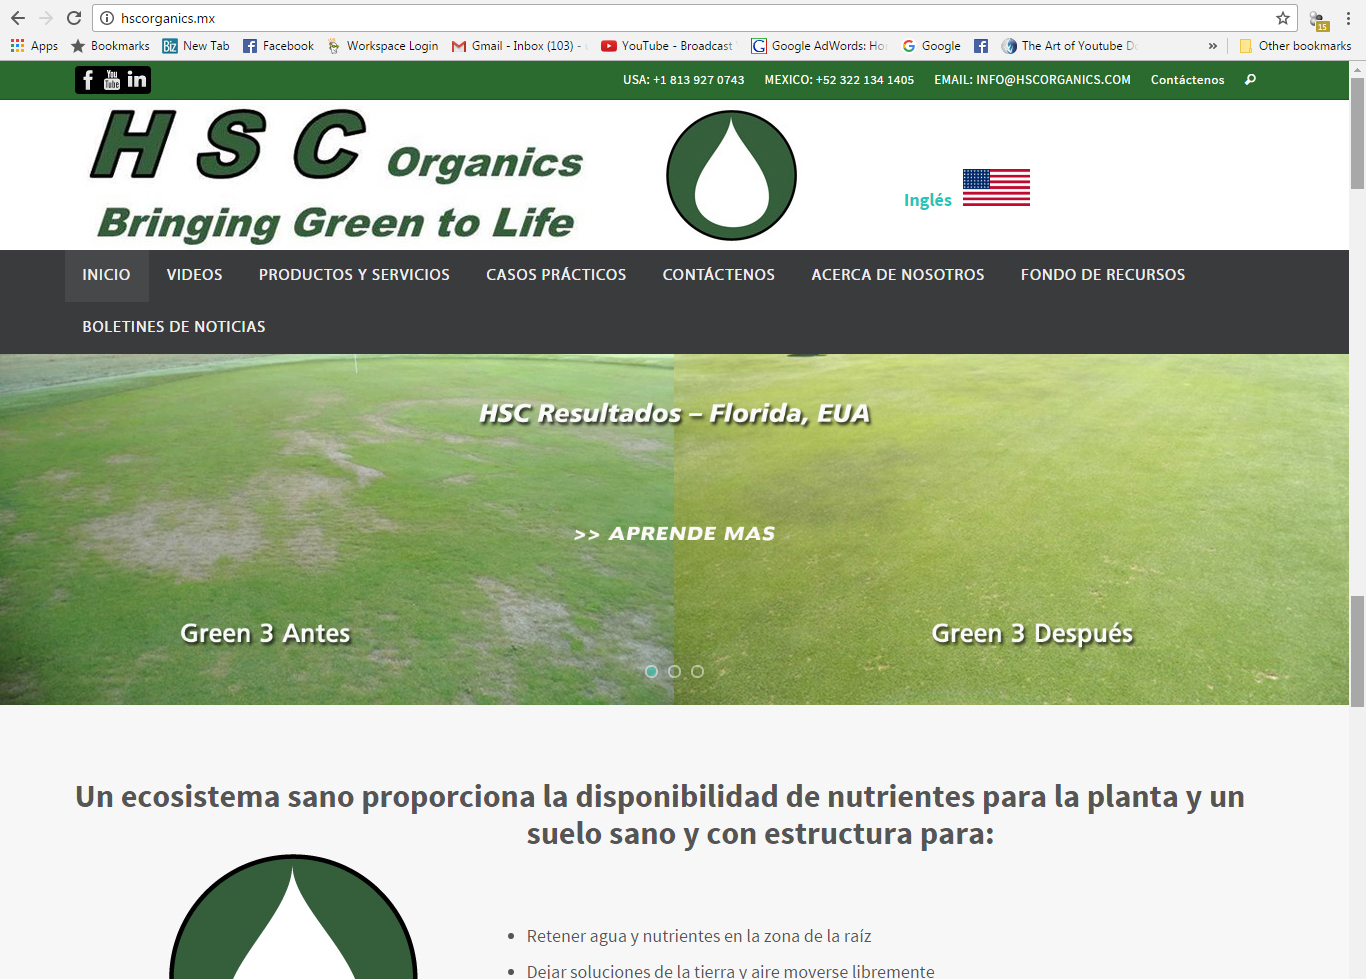 HSC Organics Website - Spanish